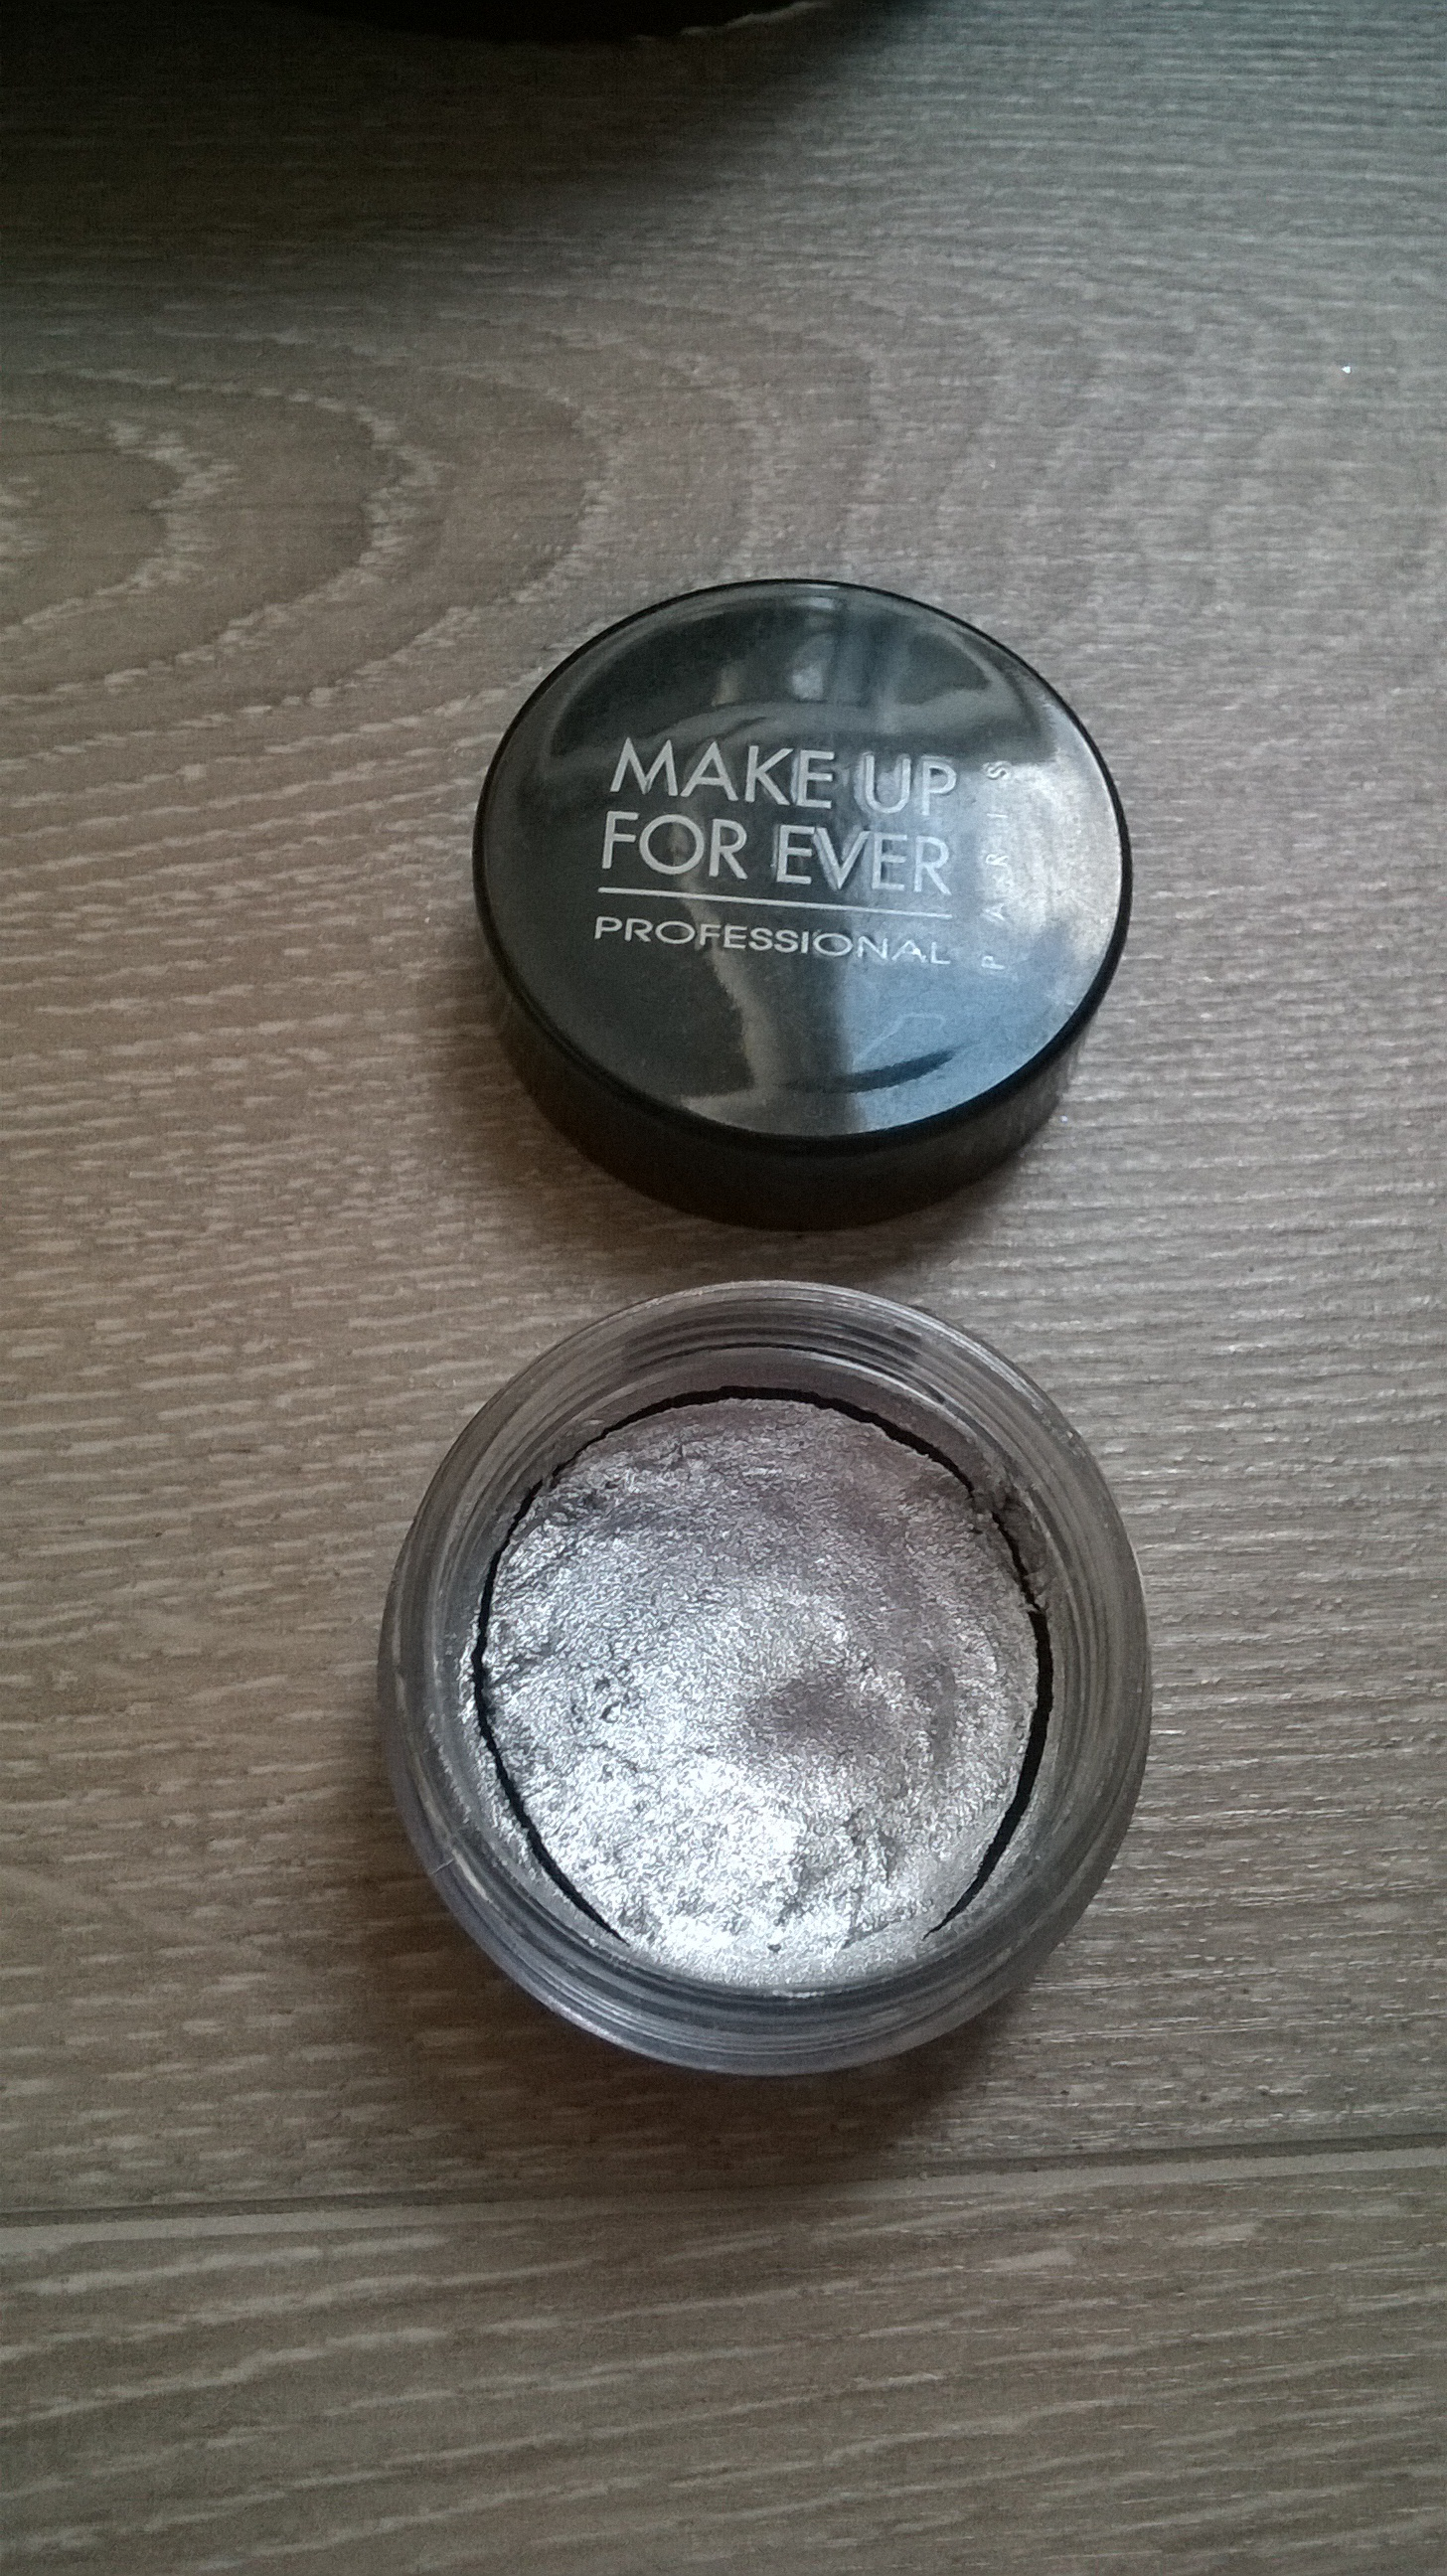 WP_20141014_067.jpg de Aqua Cream de Make Up For Ever